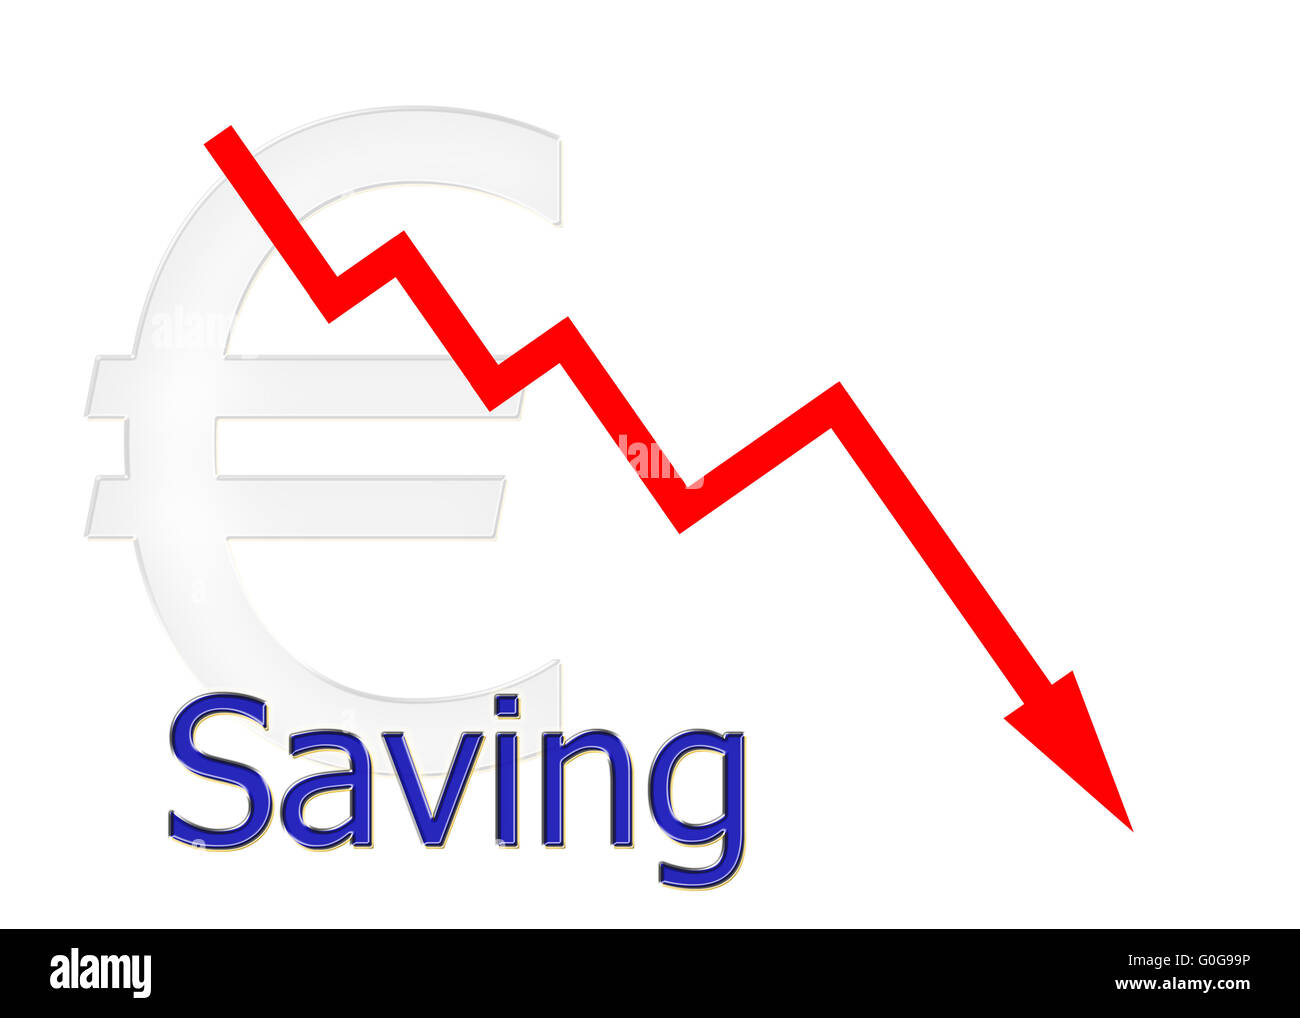 red diagram downwards with euro symbol Stock Photo